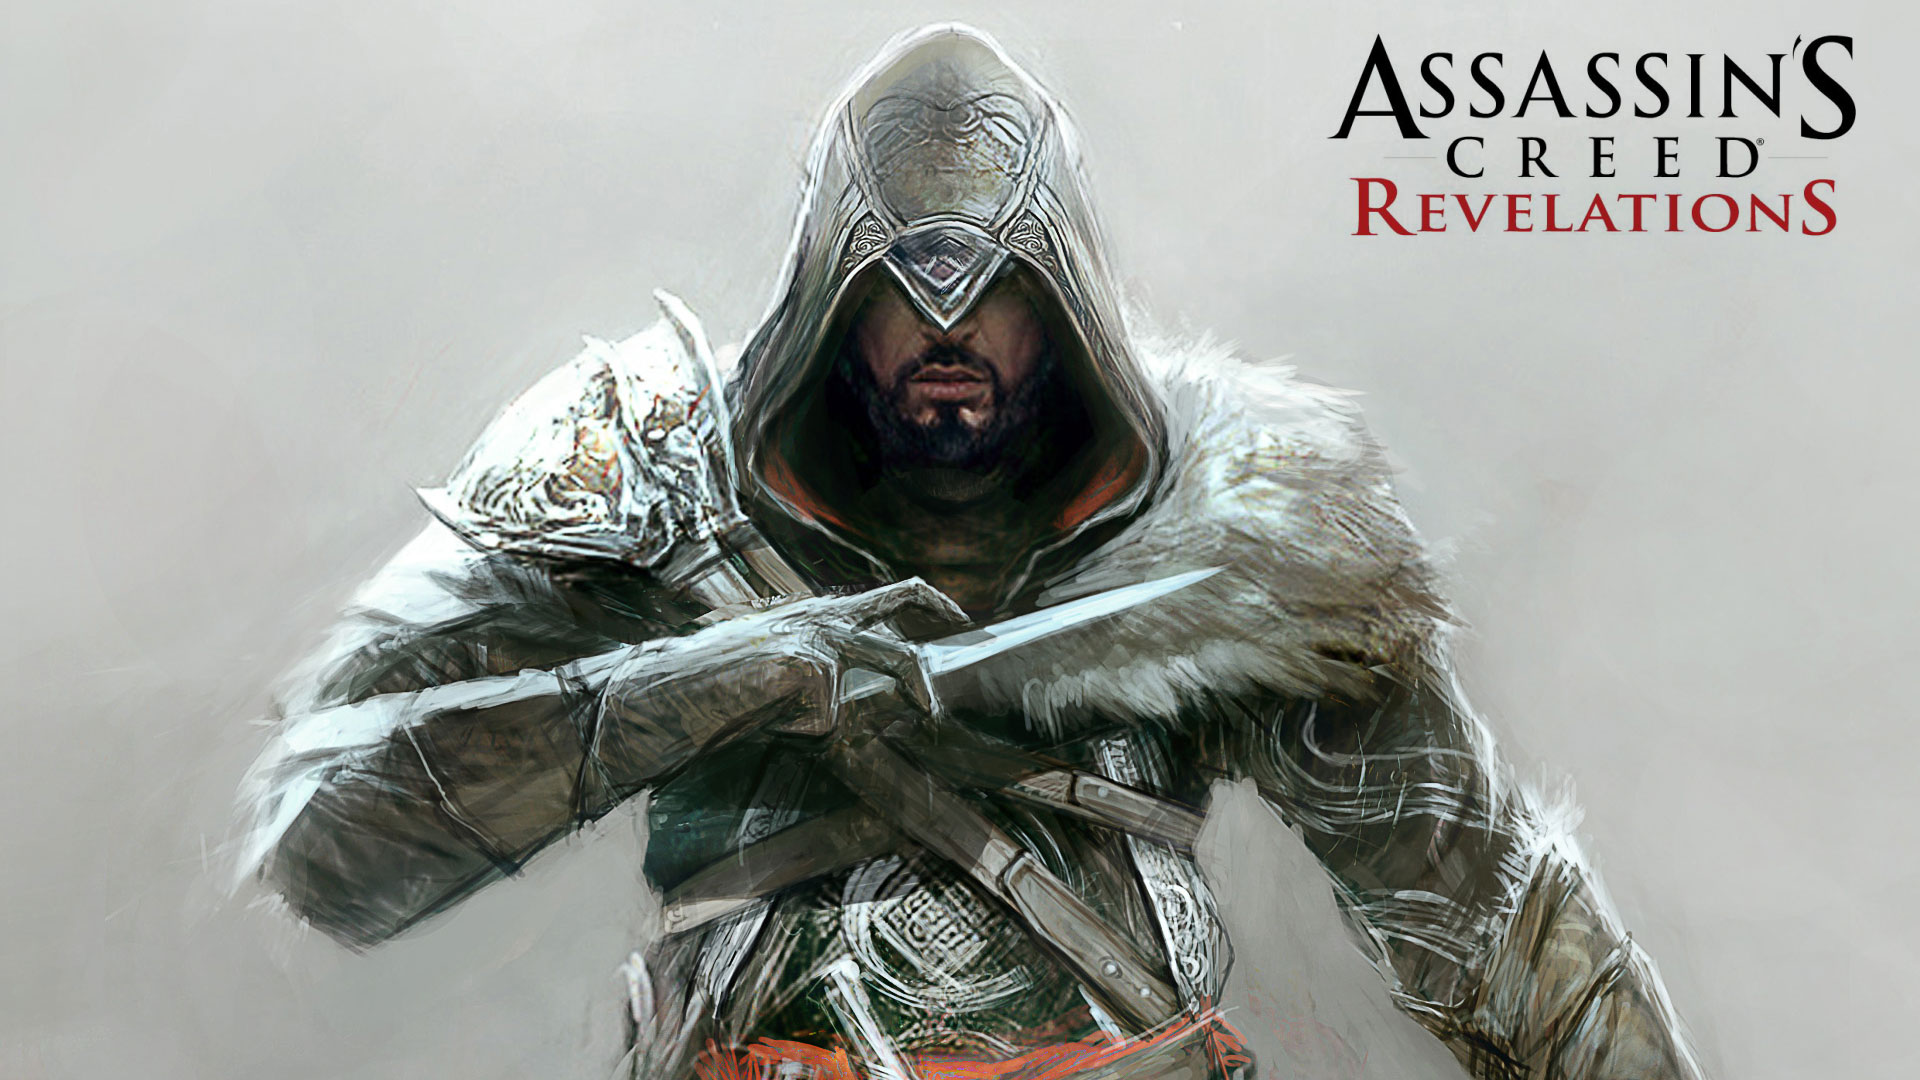 Assassins Creed Revelations Wallpapers in HD Page 3 1920x1080